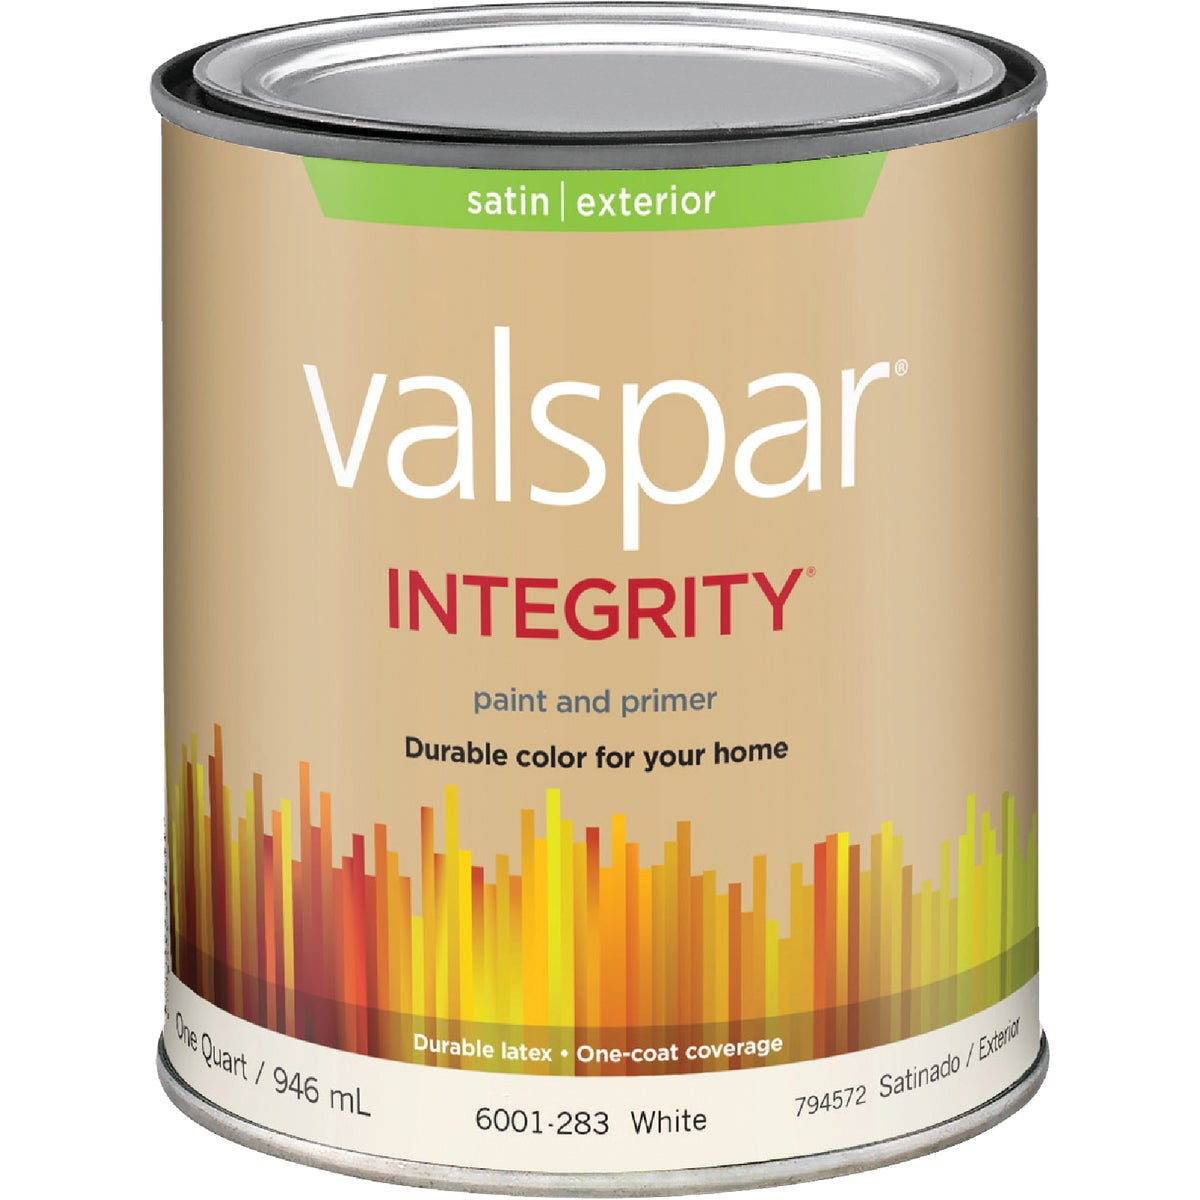 EXT SAT WHITE PAINT - 004.6001283.005 by Valspar Corp